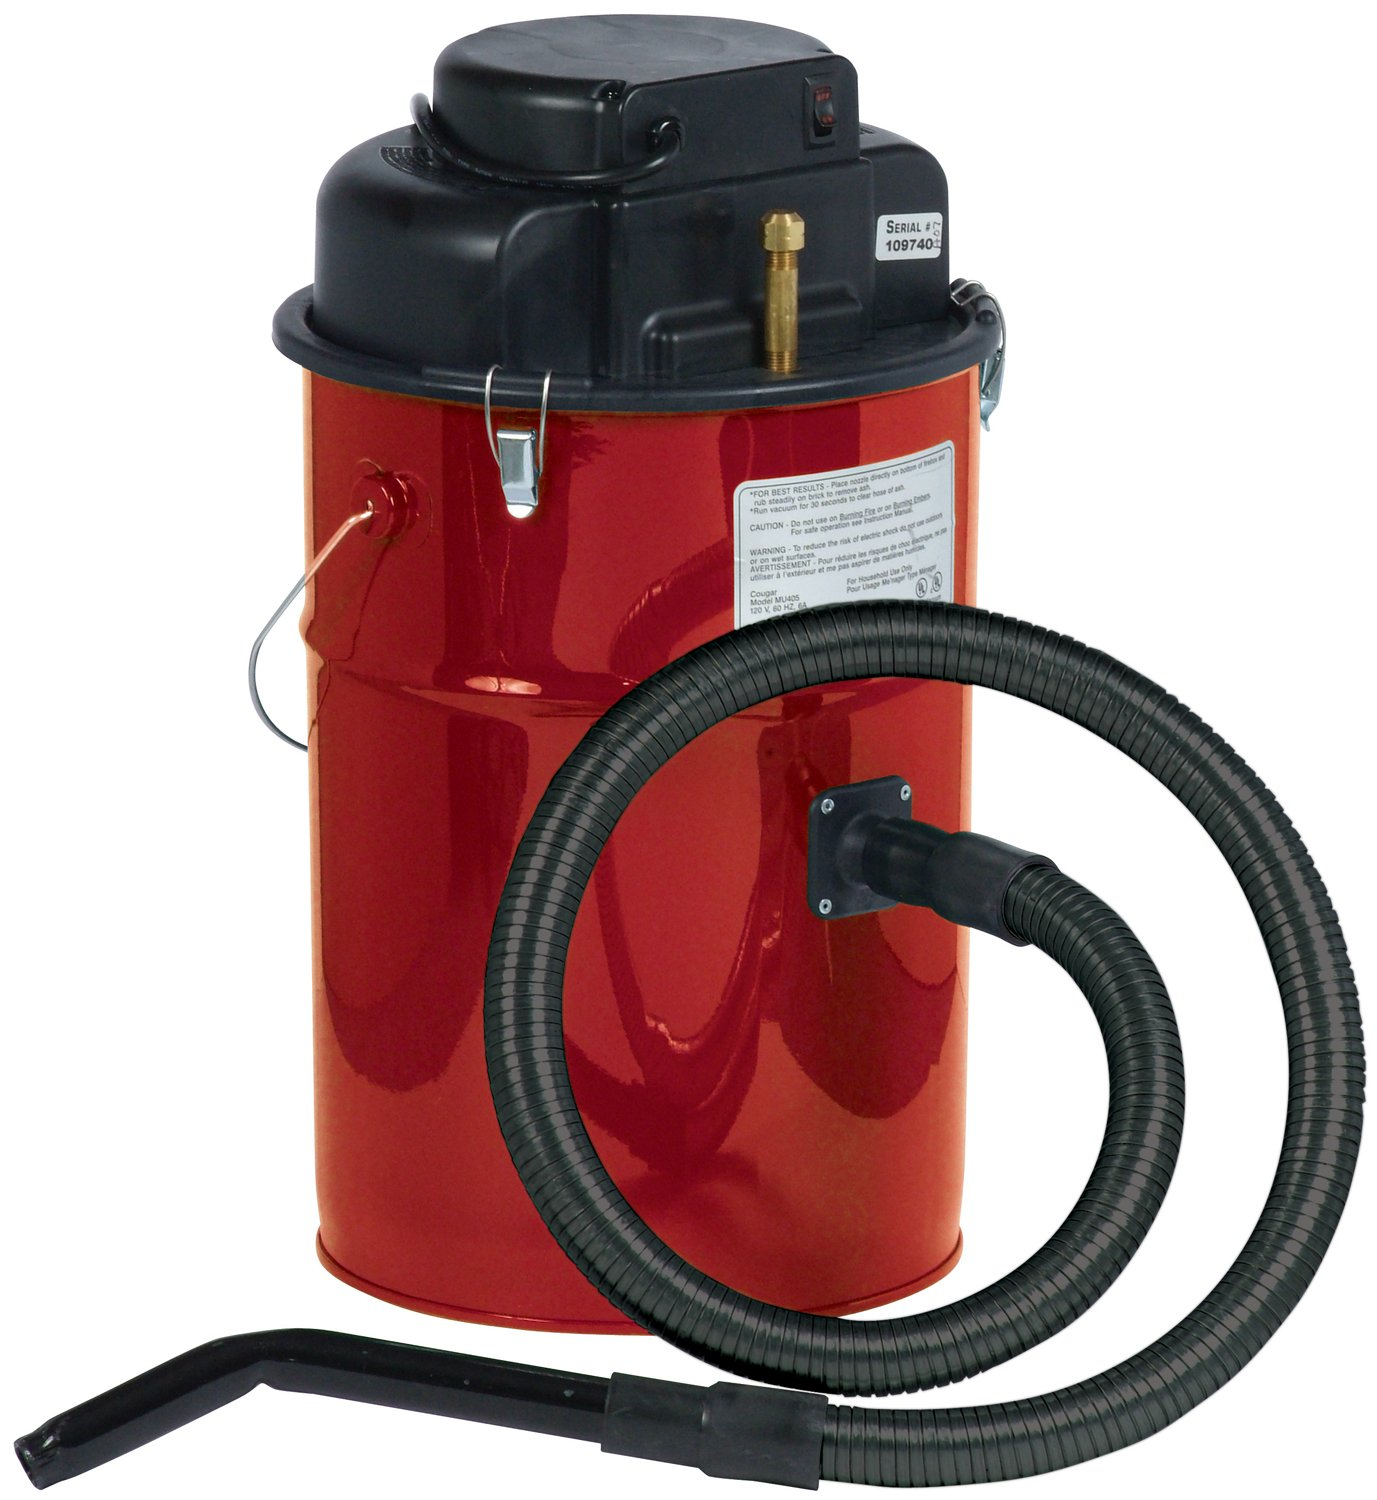 Cougar Ash Vacuum, Red, Made in USA